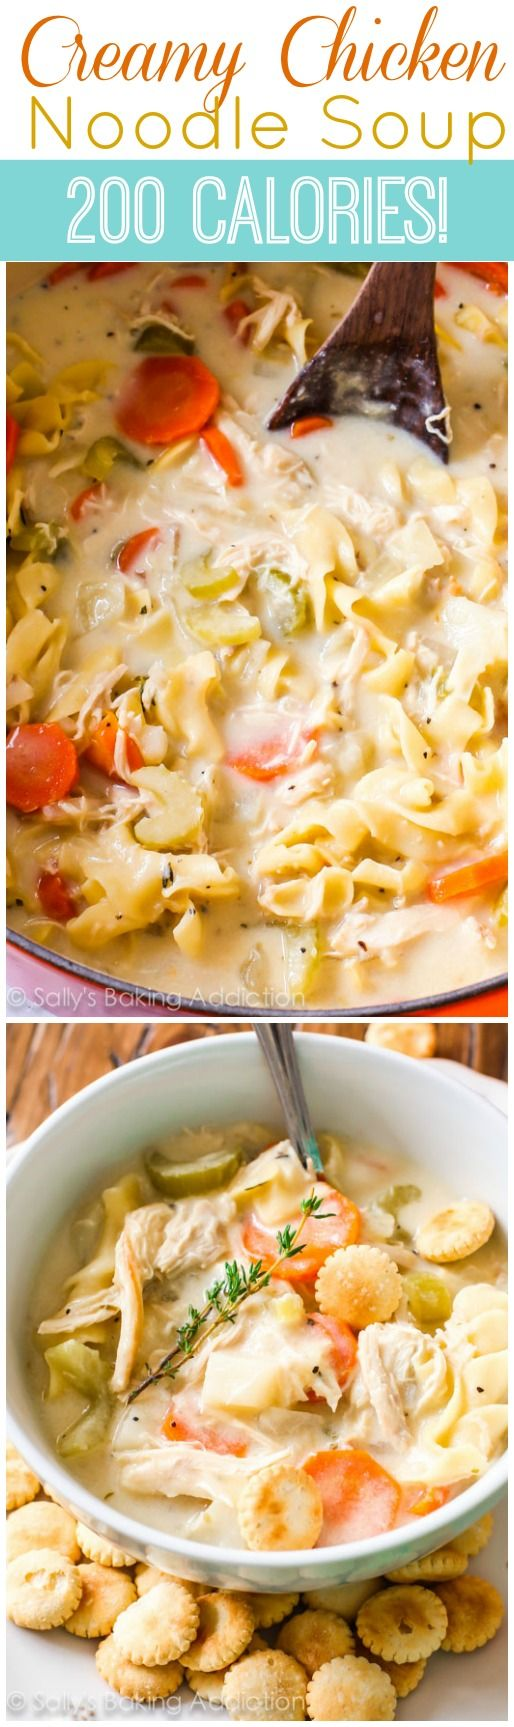 Only 200 calories in this hearty, comforting soup! Creamy Chicken Noodle Soup is my favorite.